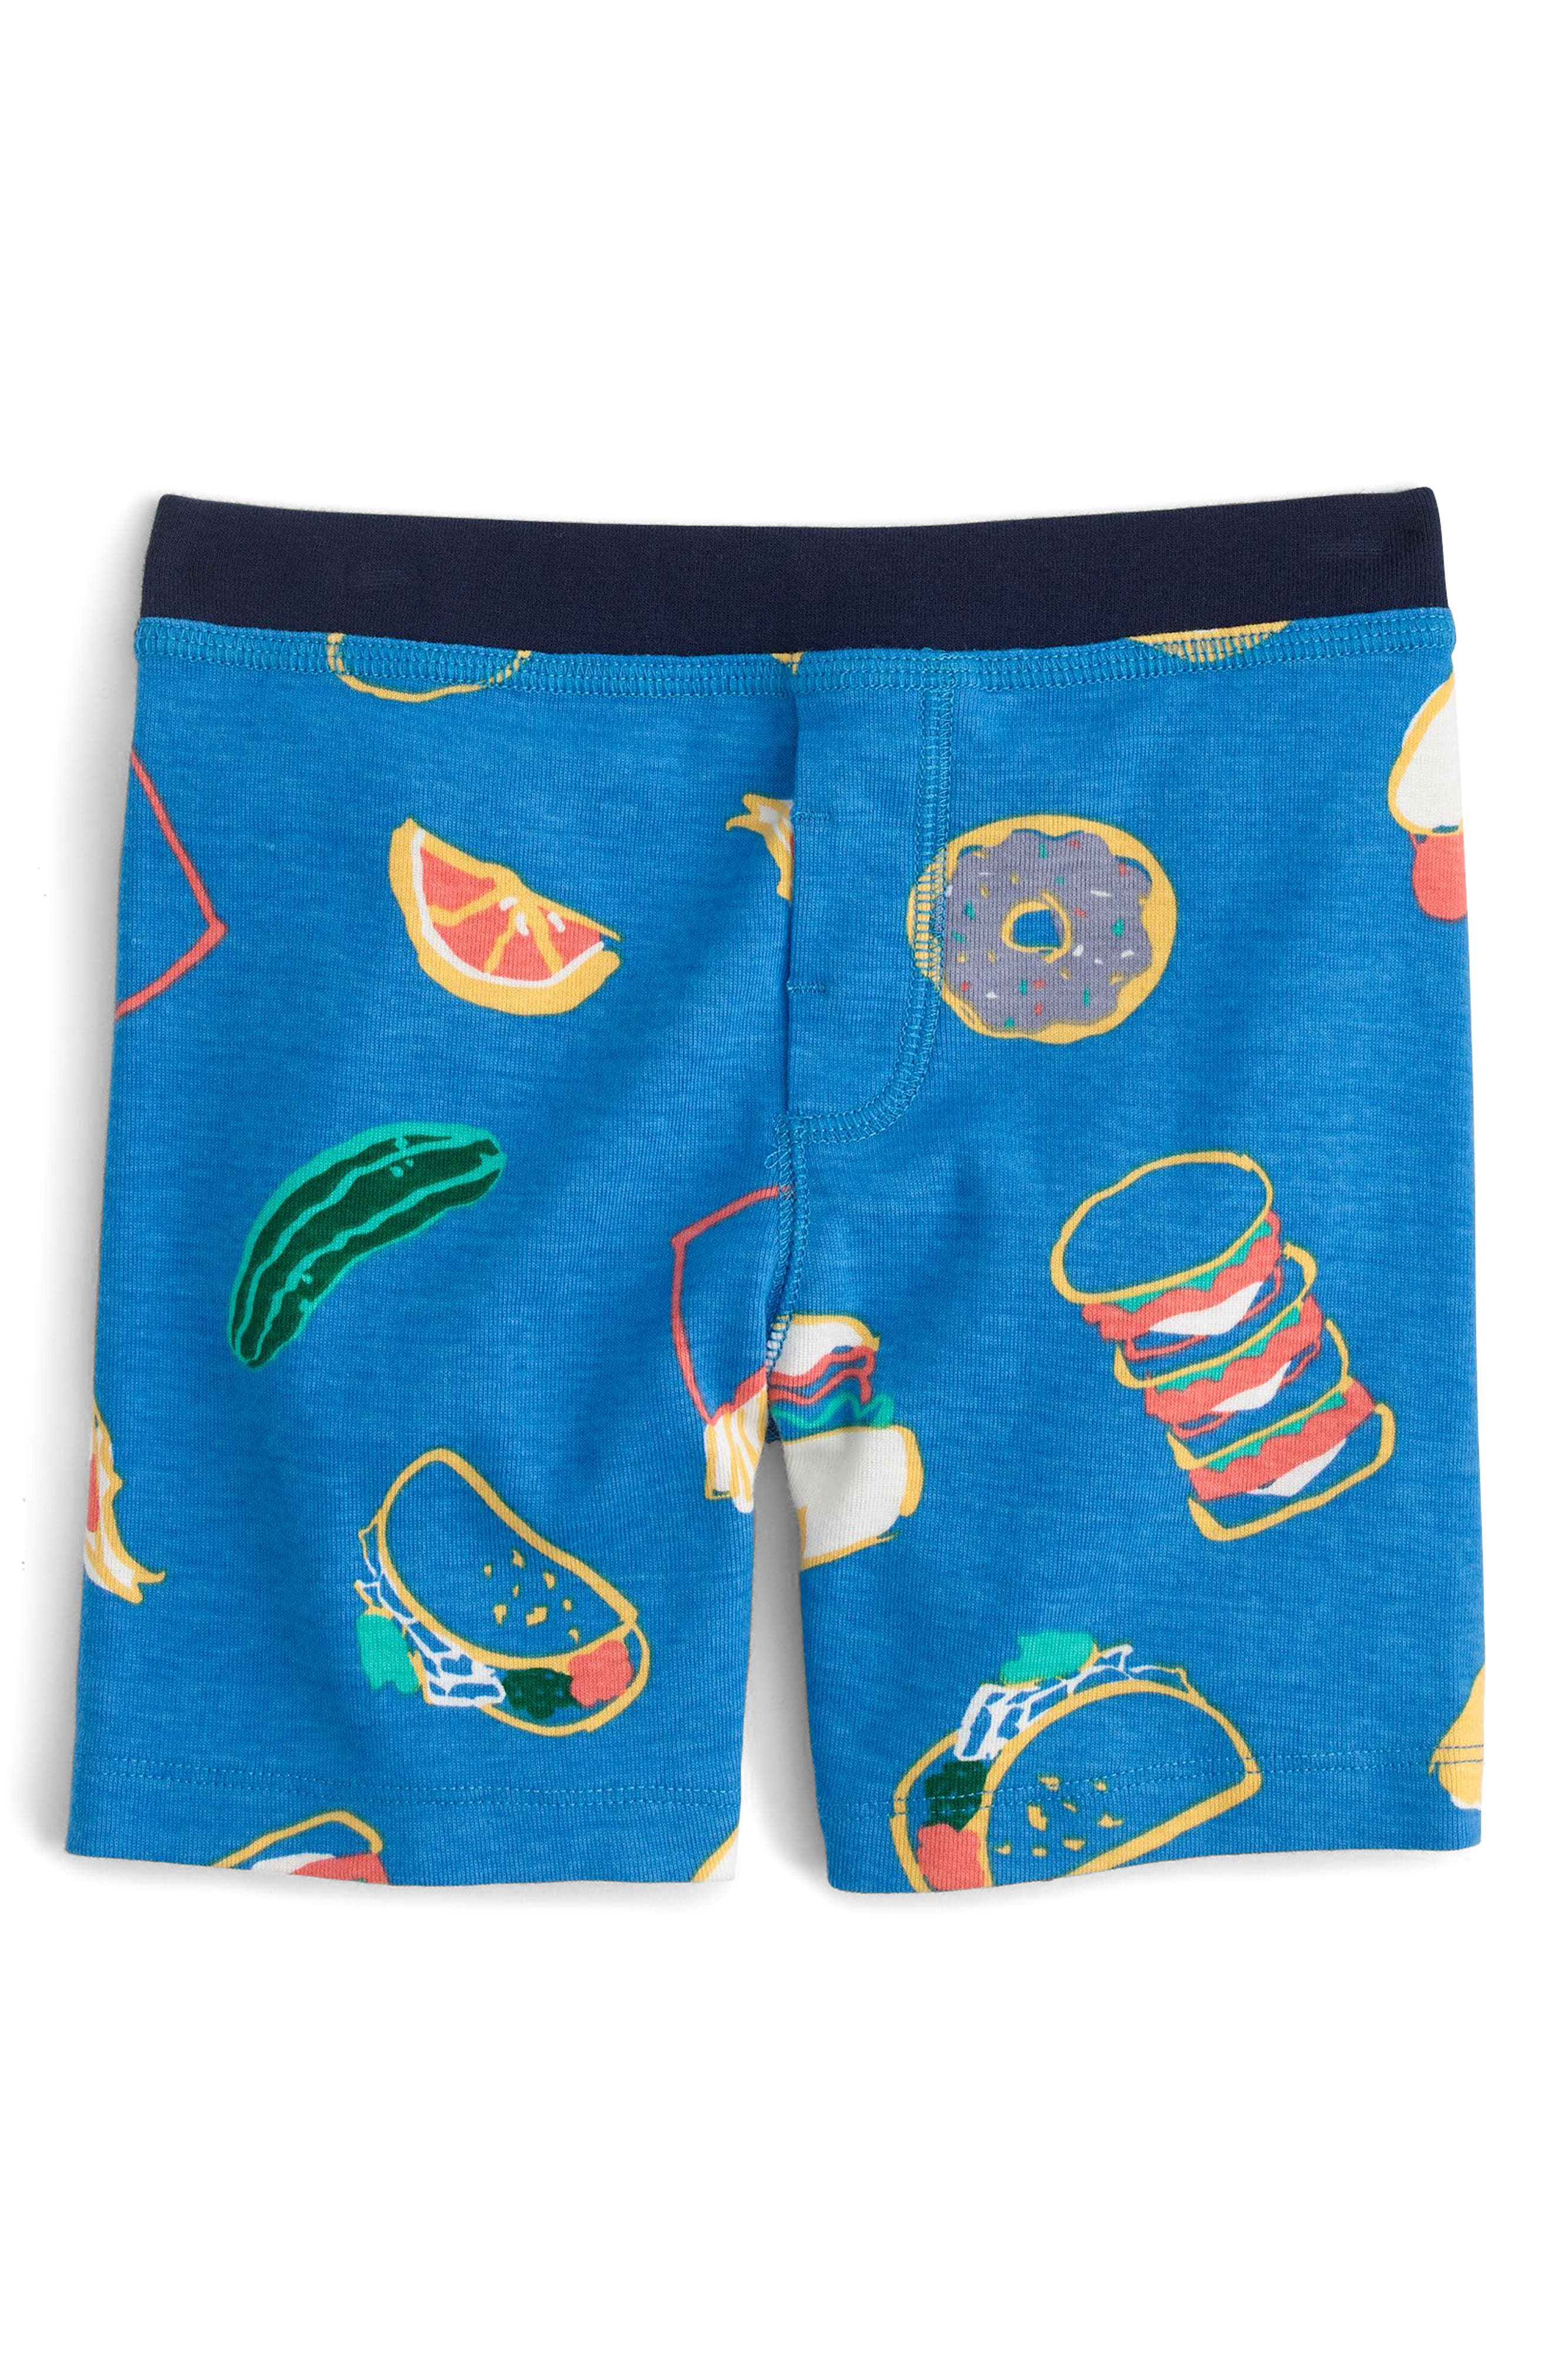 Pizza Party Fitted Two-Piece Pajamas,                             Alternate thumbnail 2, color,                             401